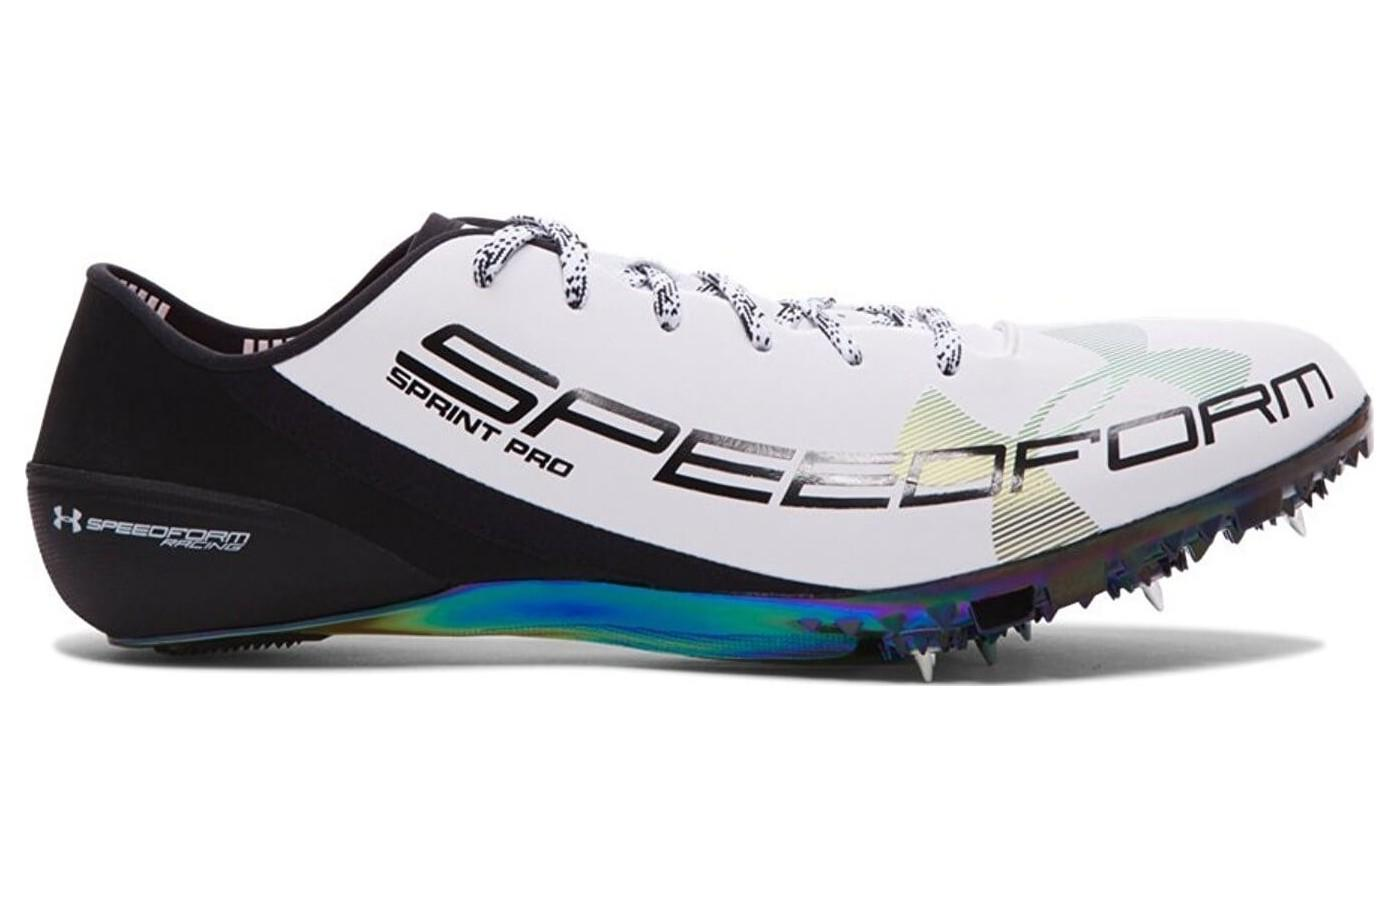 The Under Armour SpeedForm Sprint Pro shown from the side